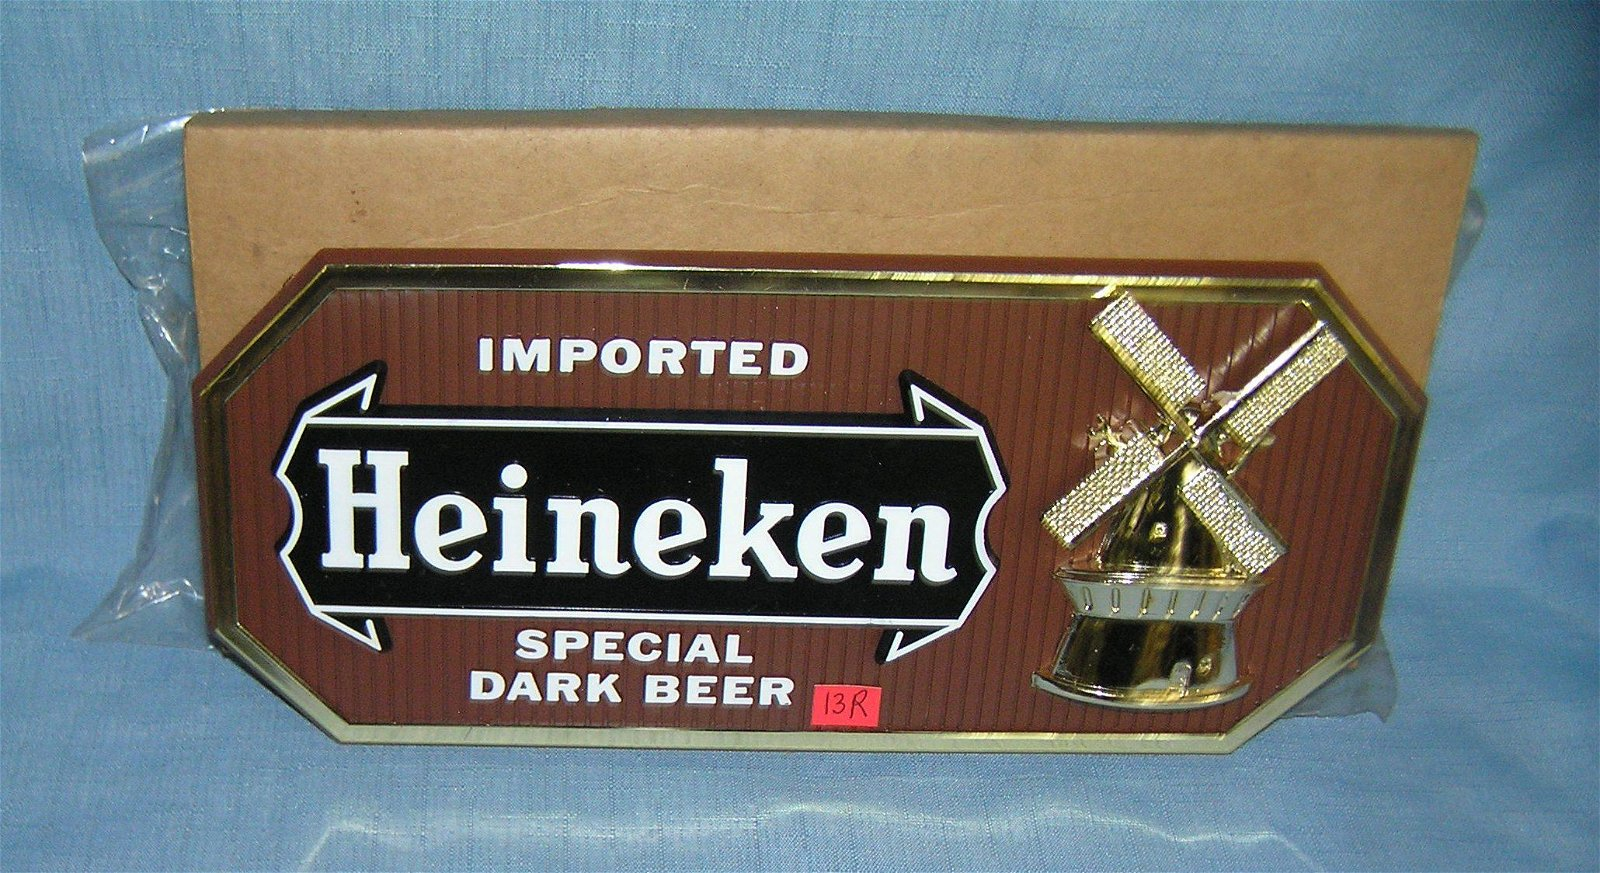 Heineken imported beer advertising display sign